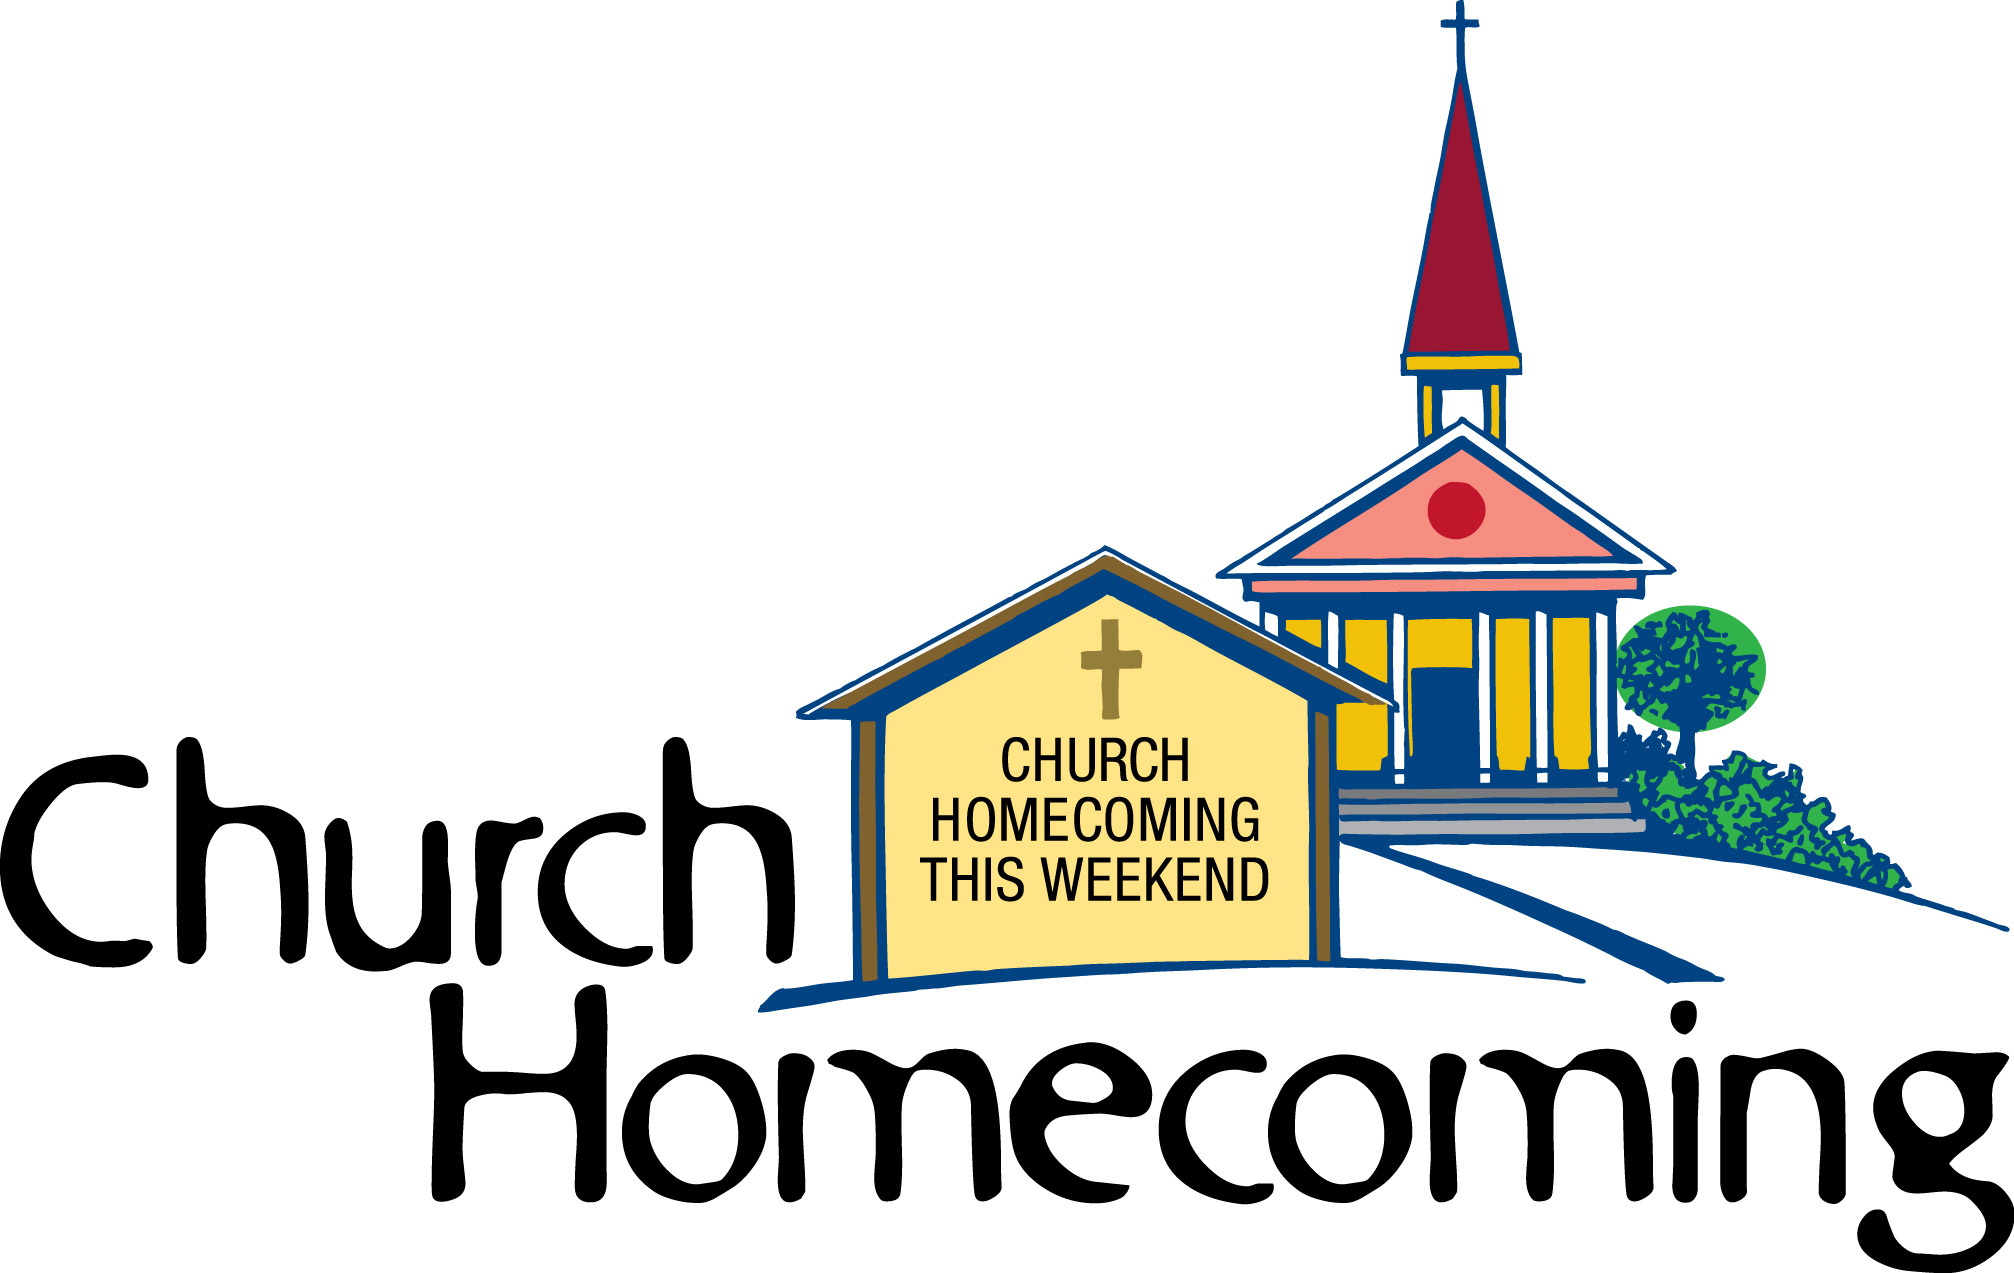 Homecoming Bulletin Clipart - Clipart Kid